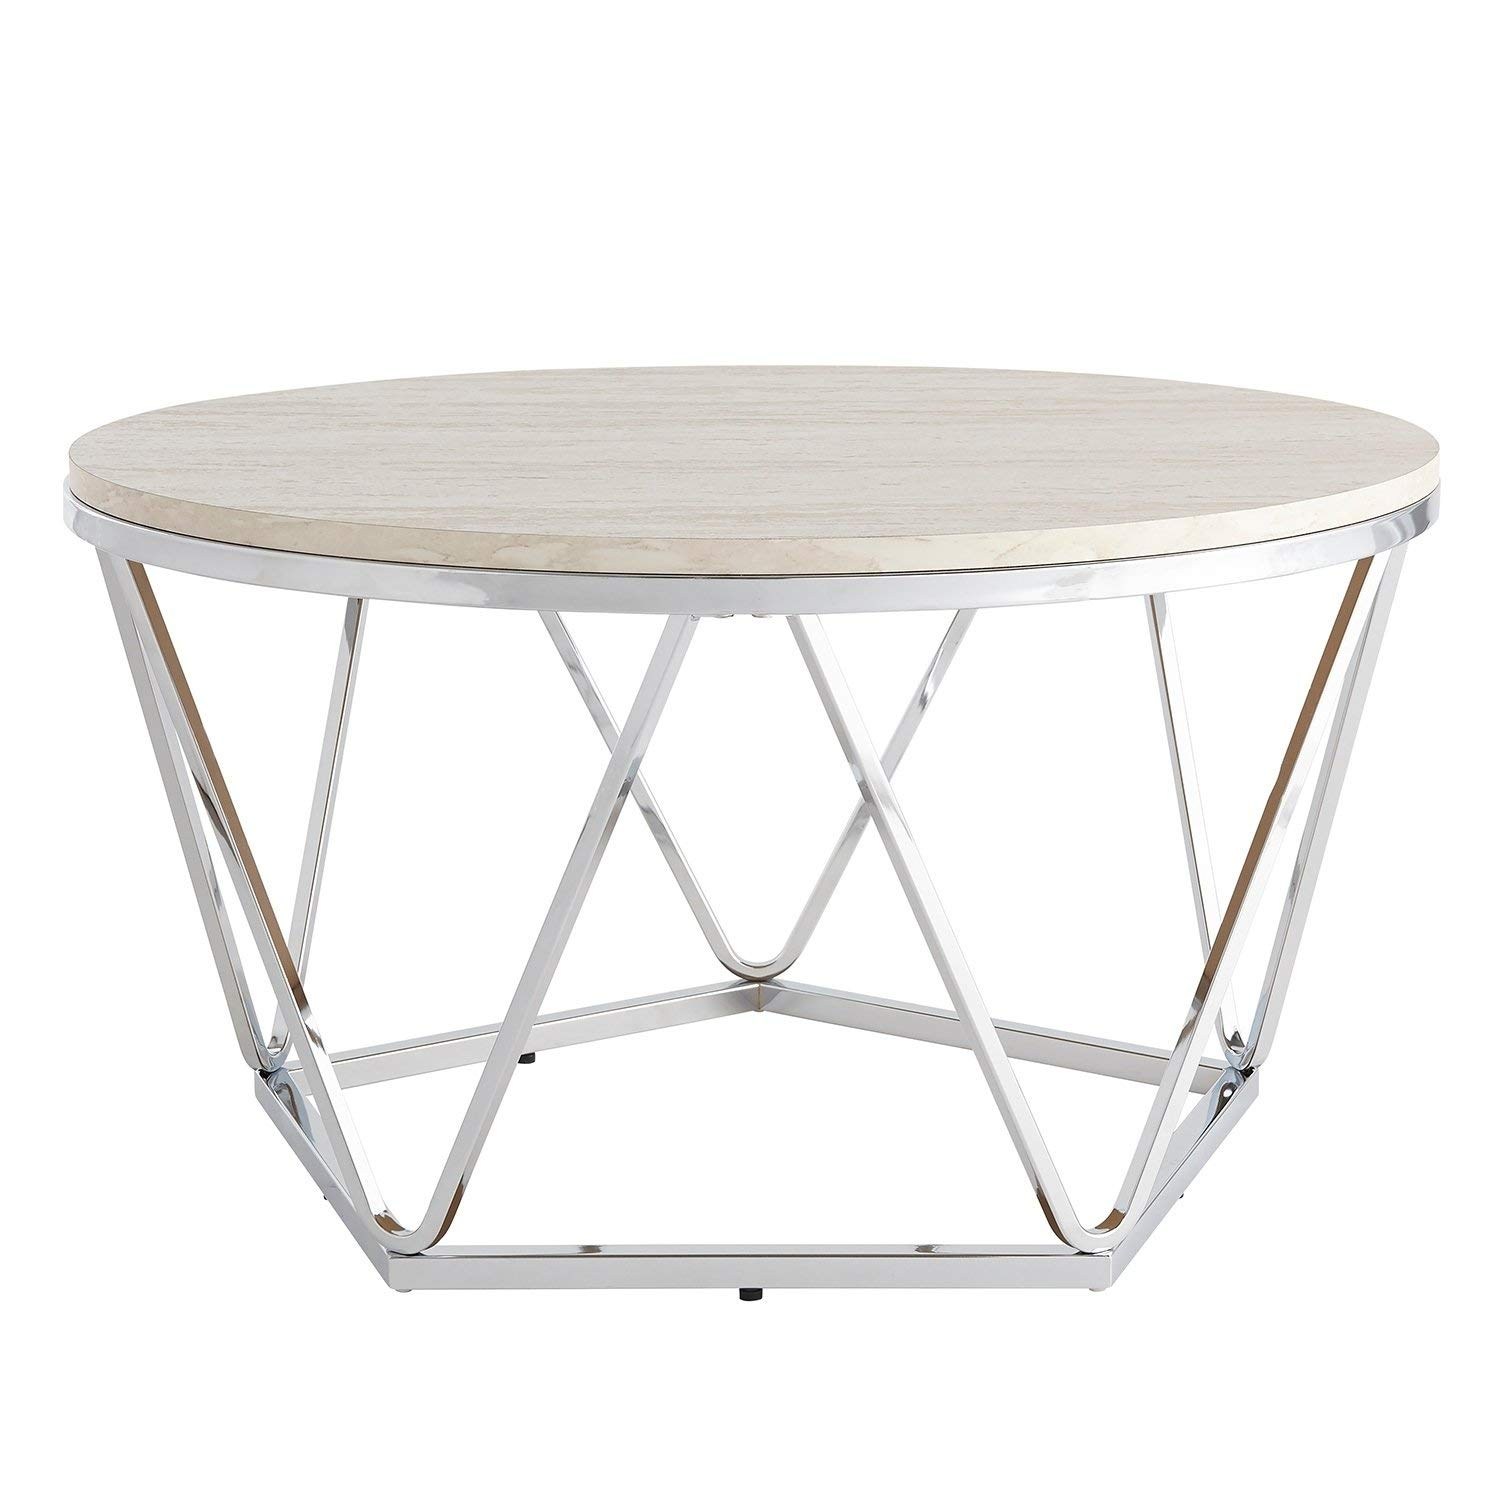 Fantastic Amazon Com Modern Silver Round Faux Stone Table Top Andrewgaddart Wooden Chair Designs For Living Room Andrewgaddartcom